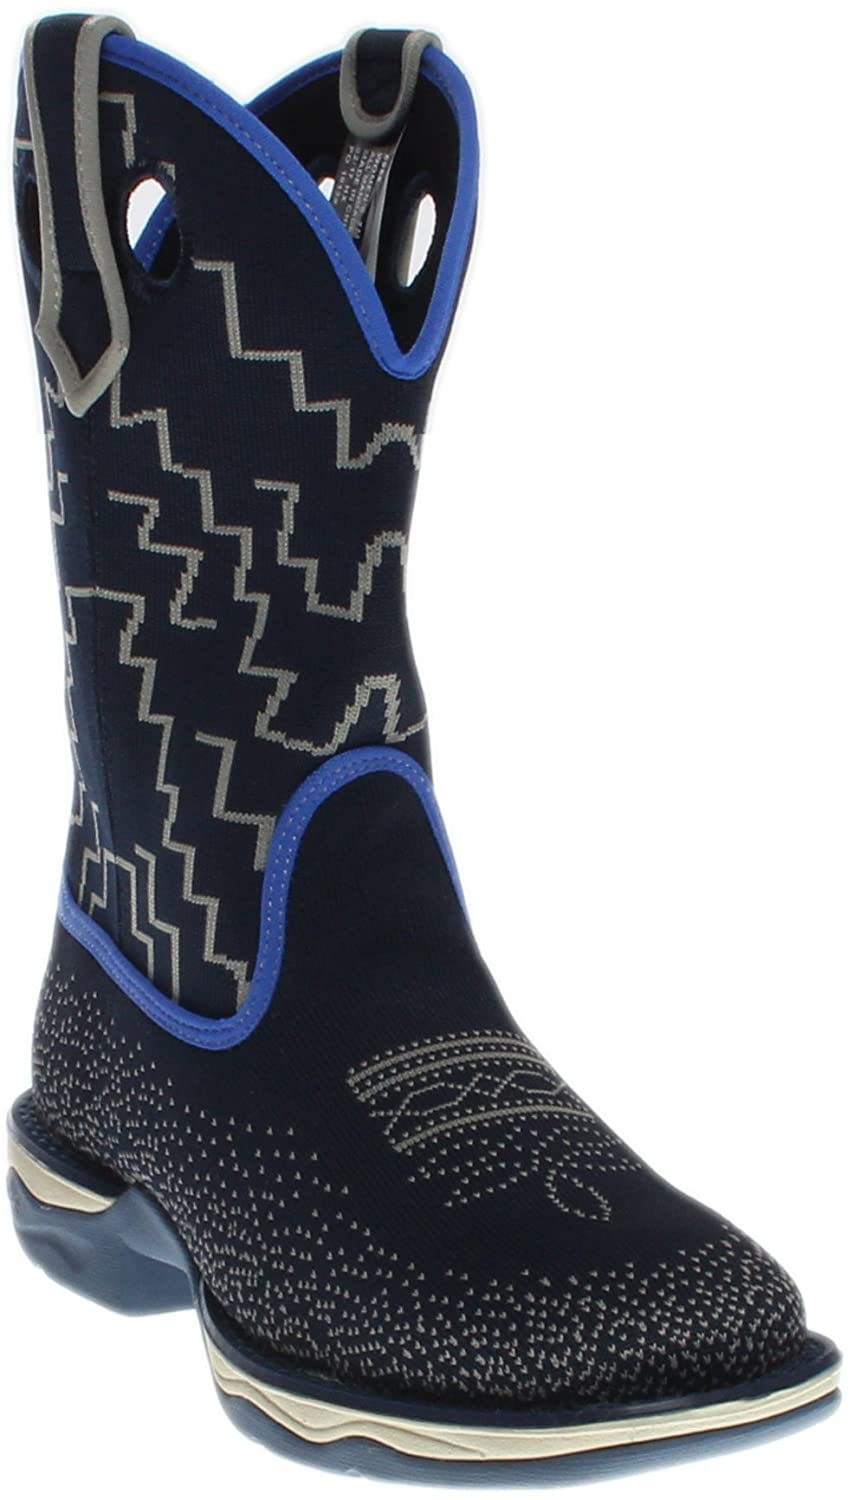 Laredo Women's Frolic Blue Woven Performair Stockman Boot Square Toe - 5958 B01LZ4KIME 8.5 B(M) US|Blue